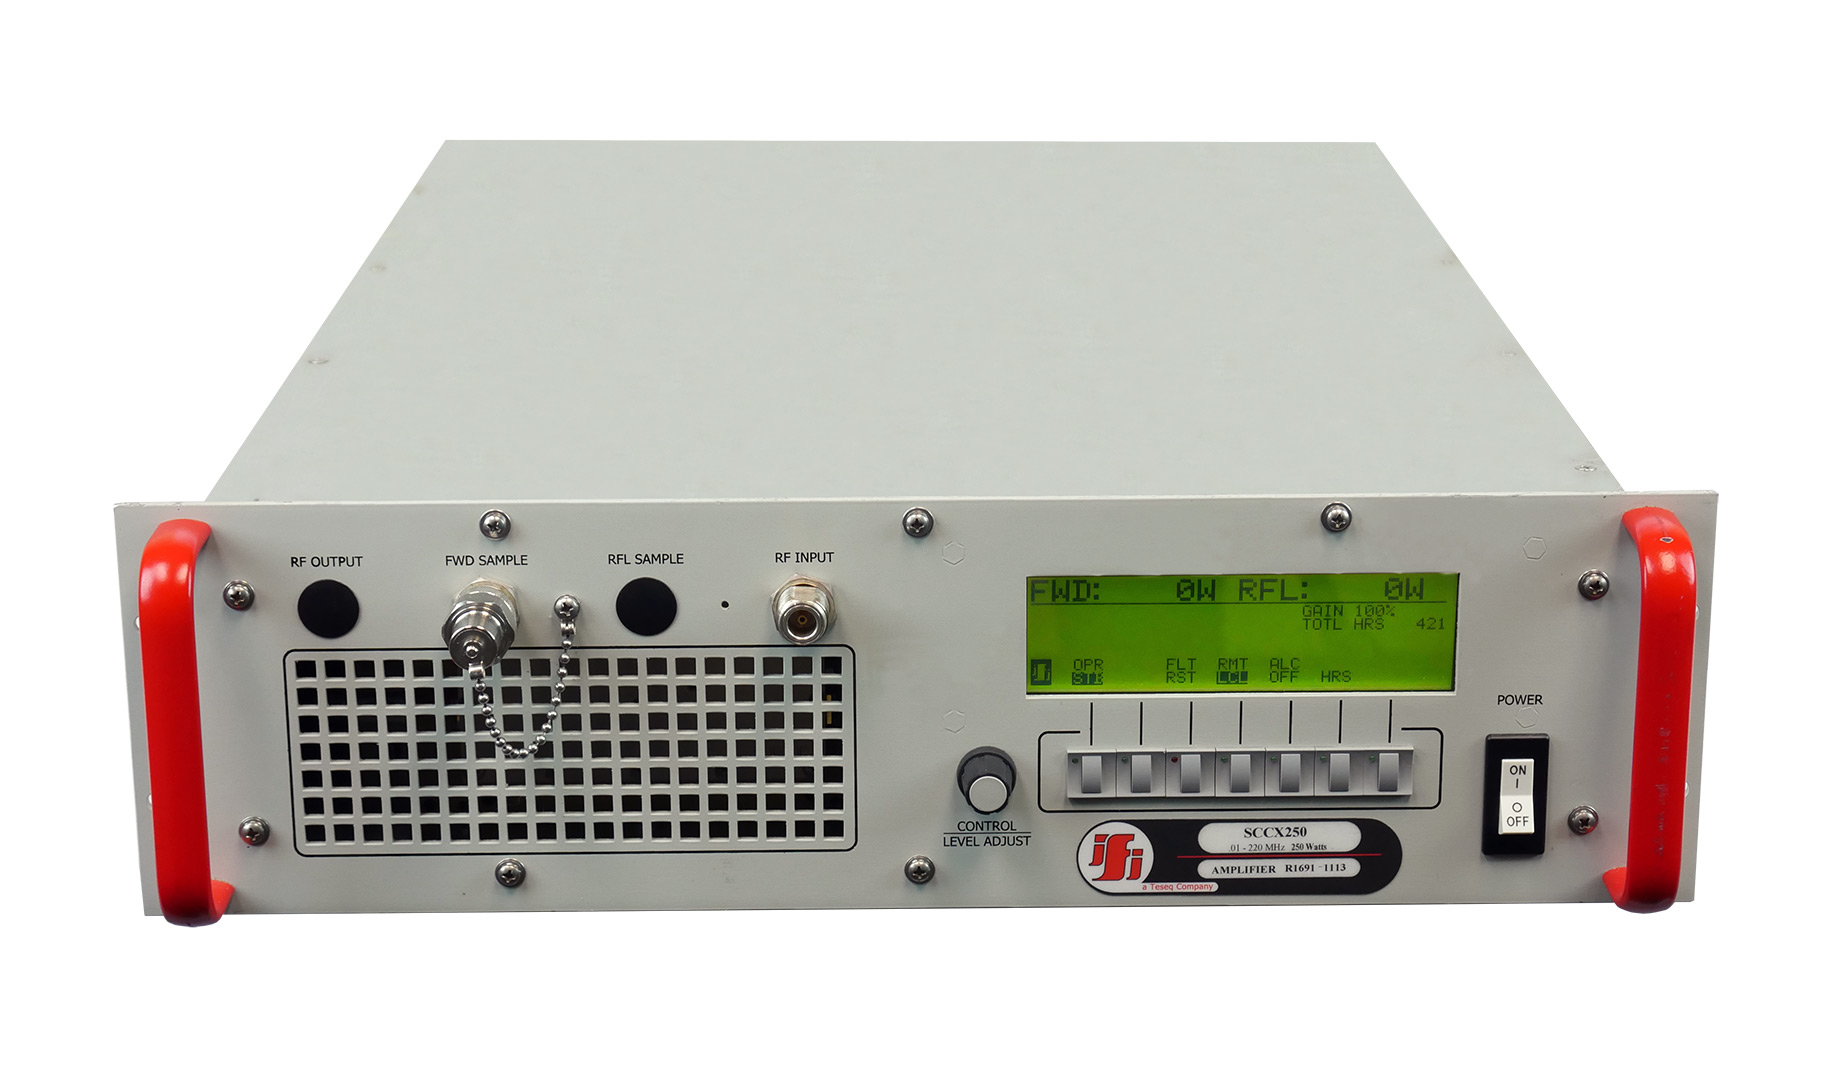 IFI SCCX250 Solid State RF Power Amplifier